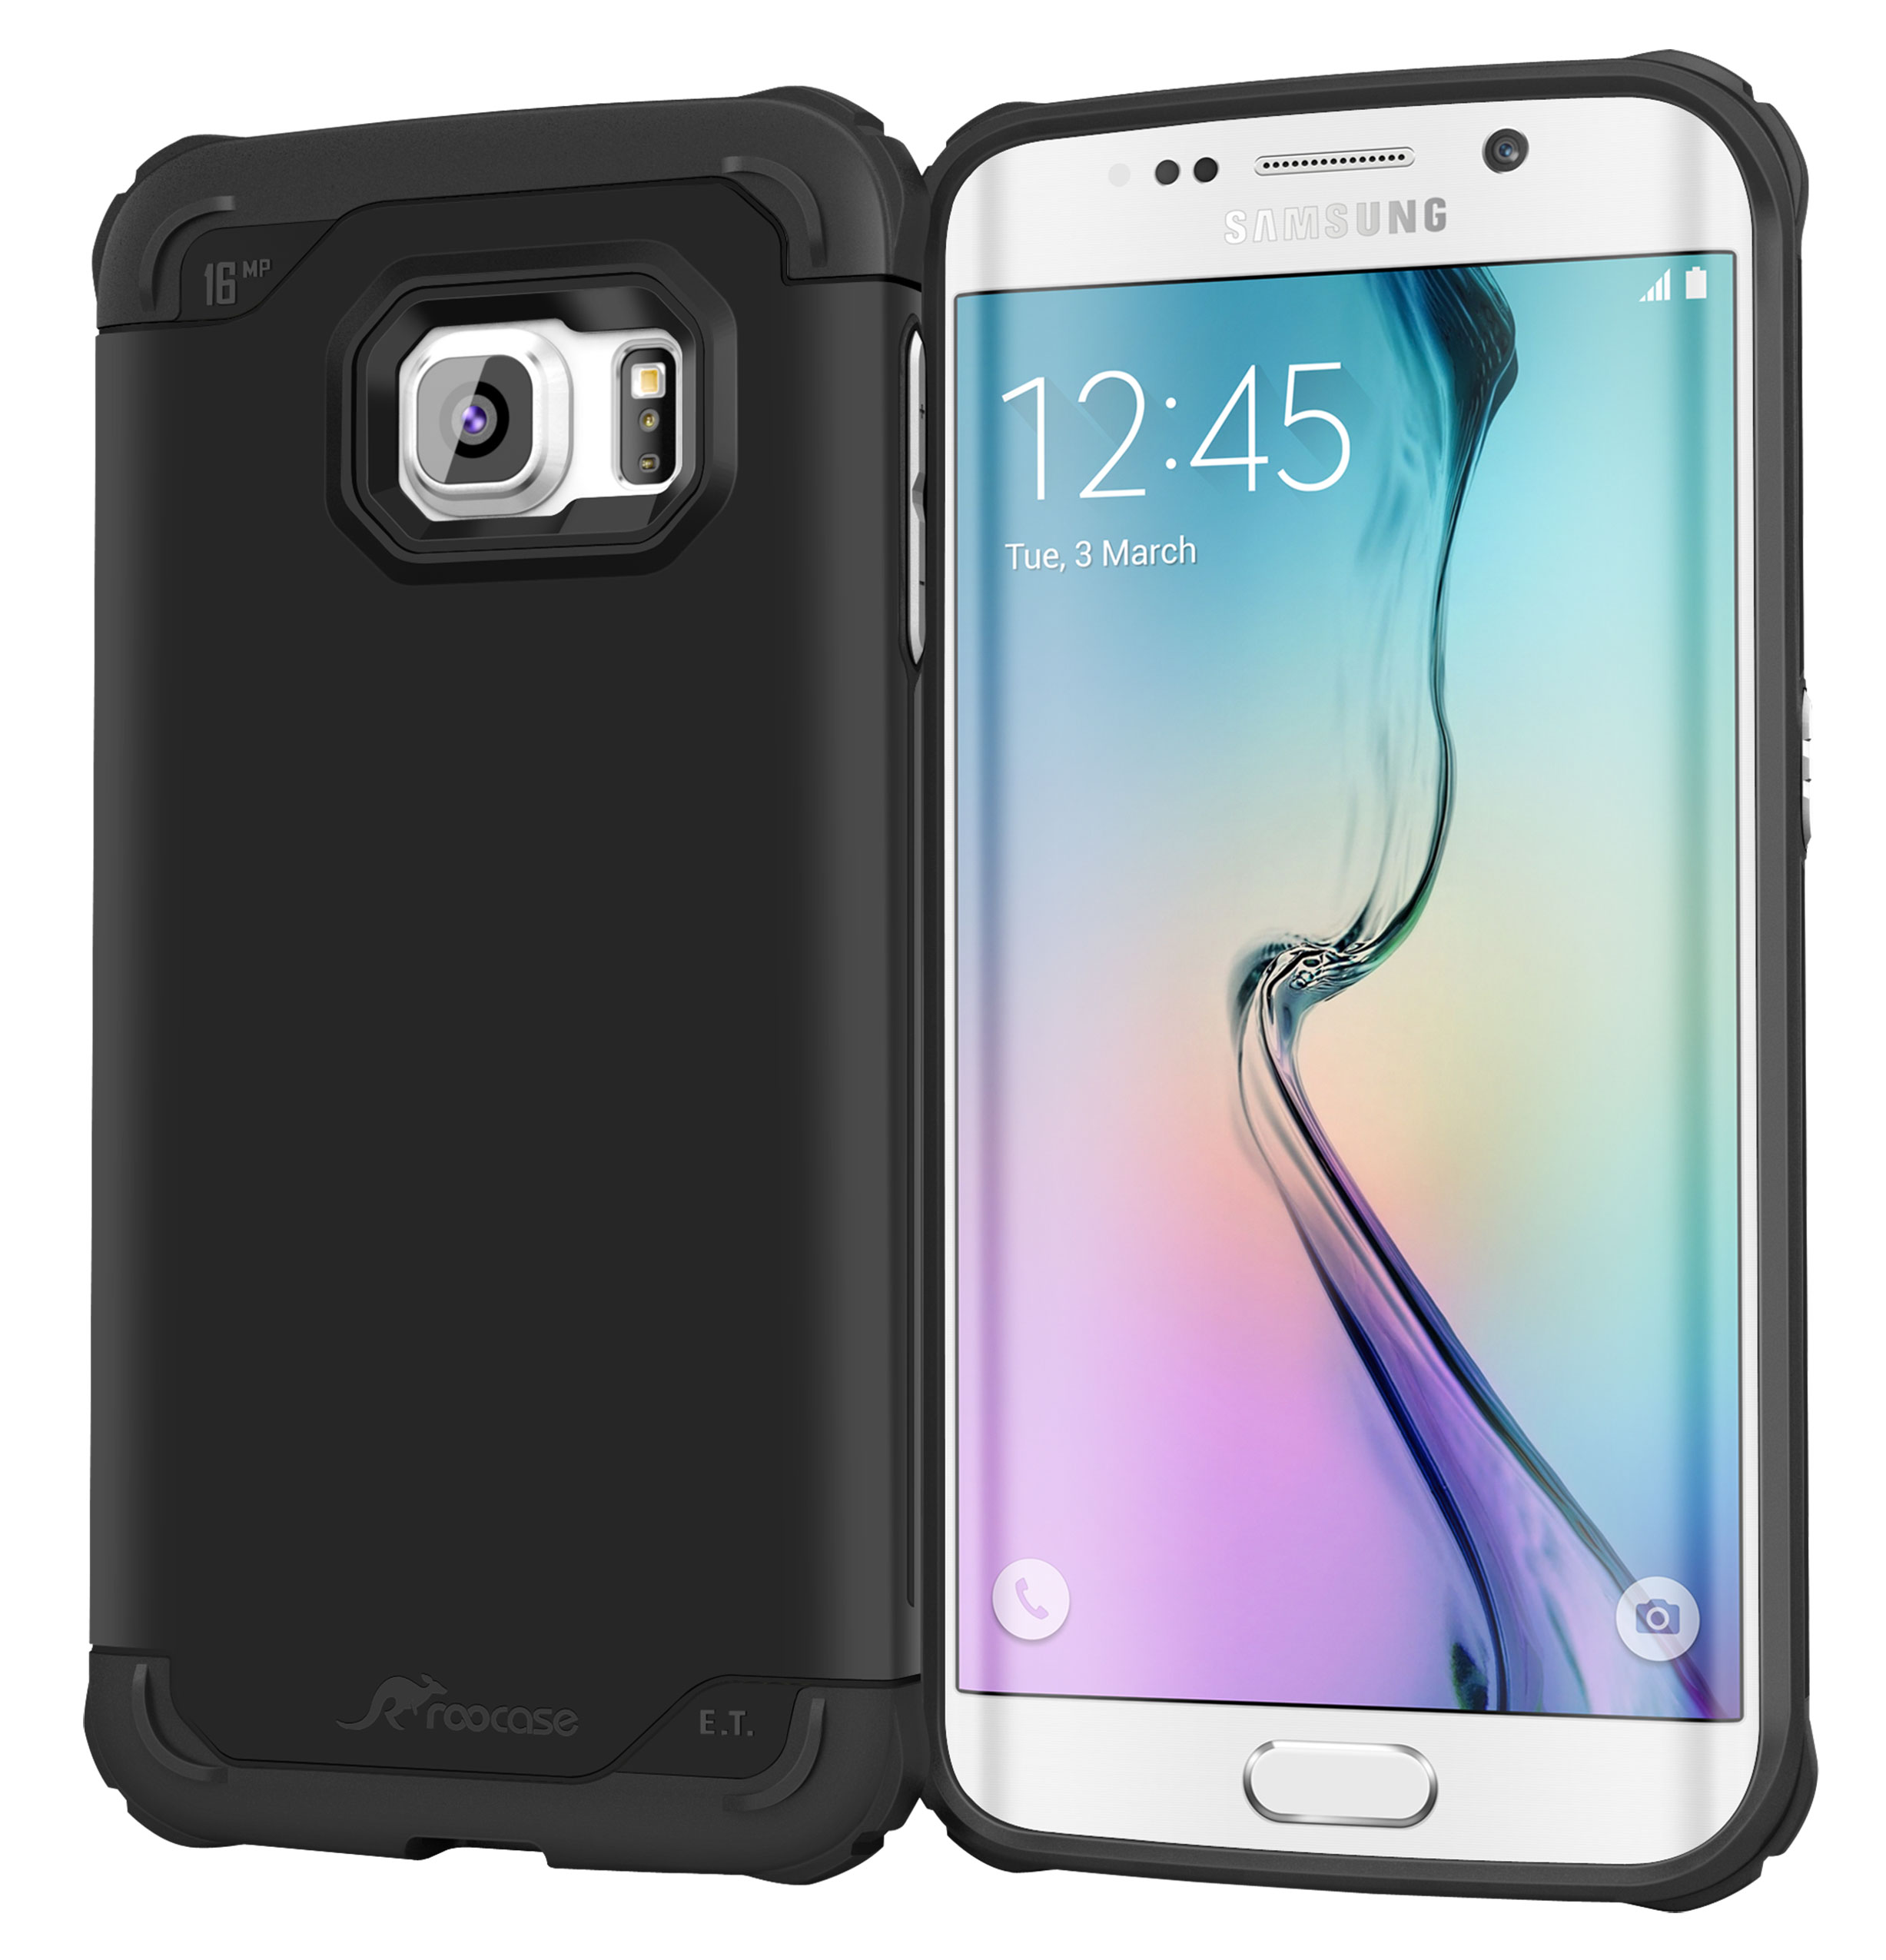 galaxy s6 edge cases walmart comproduct image galaxy s6 edge case, roocase [exec tough] galaxy s6 edge slim fit case